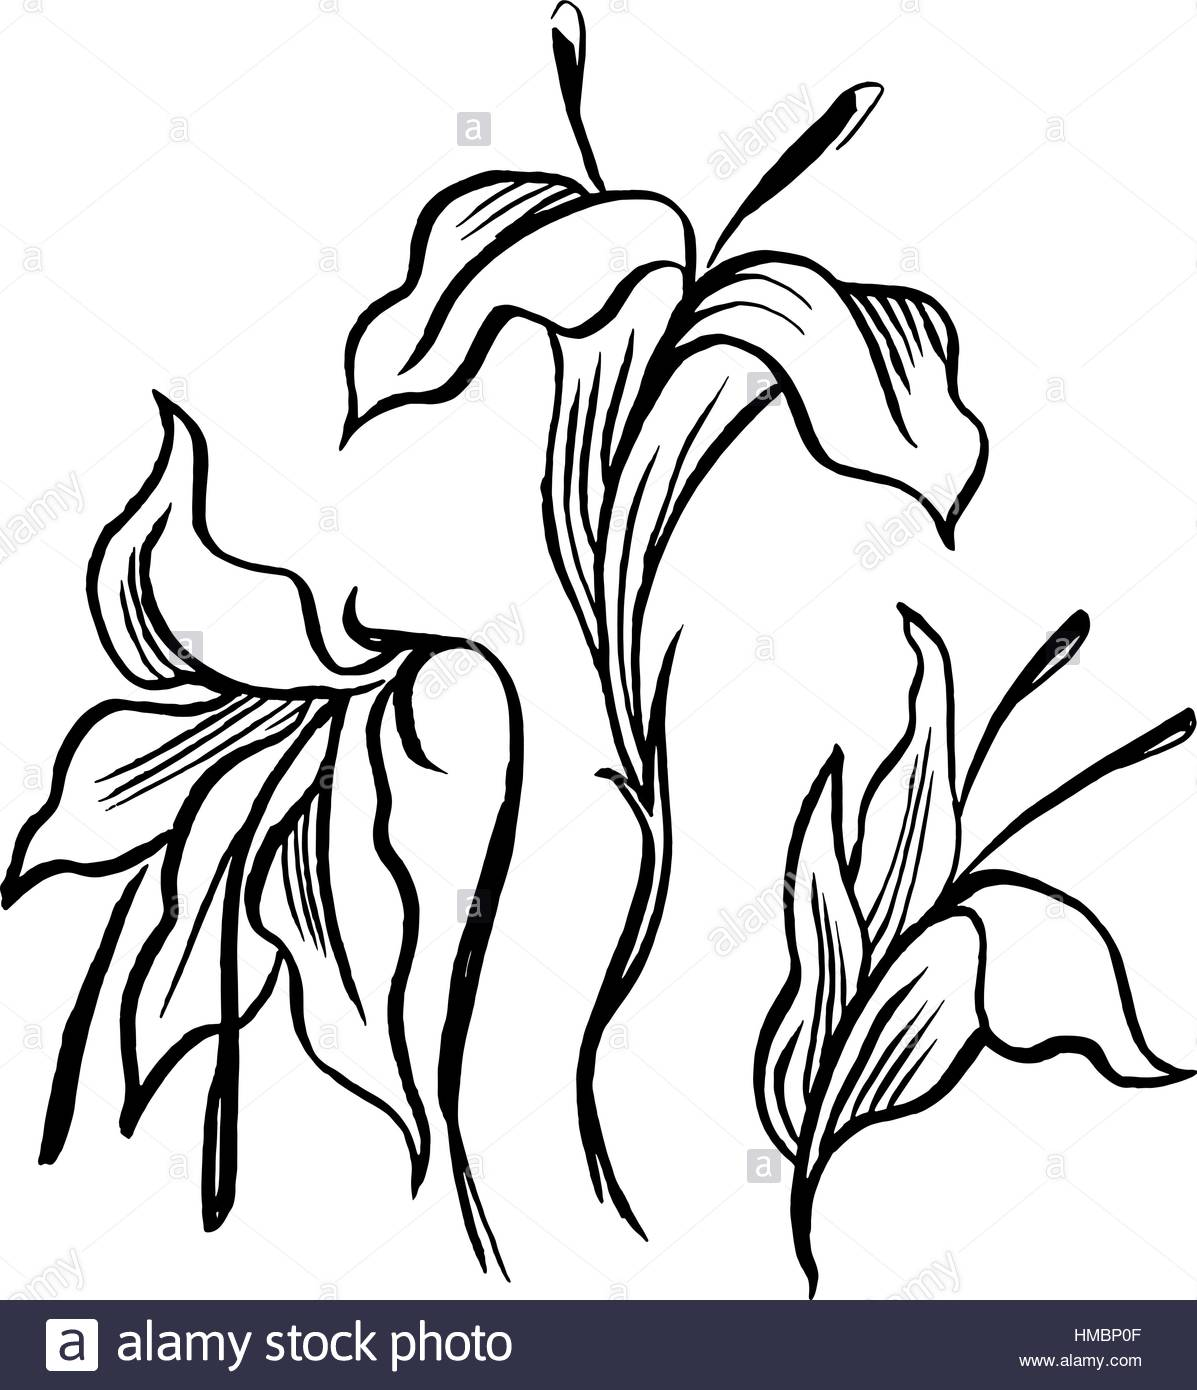 1197x1390 Vector Sketch Black Contour Of Lily Flowers Stock Vector Art